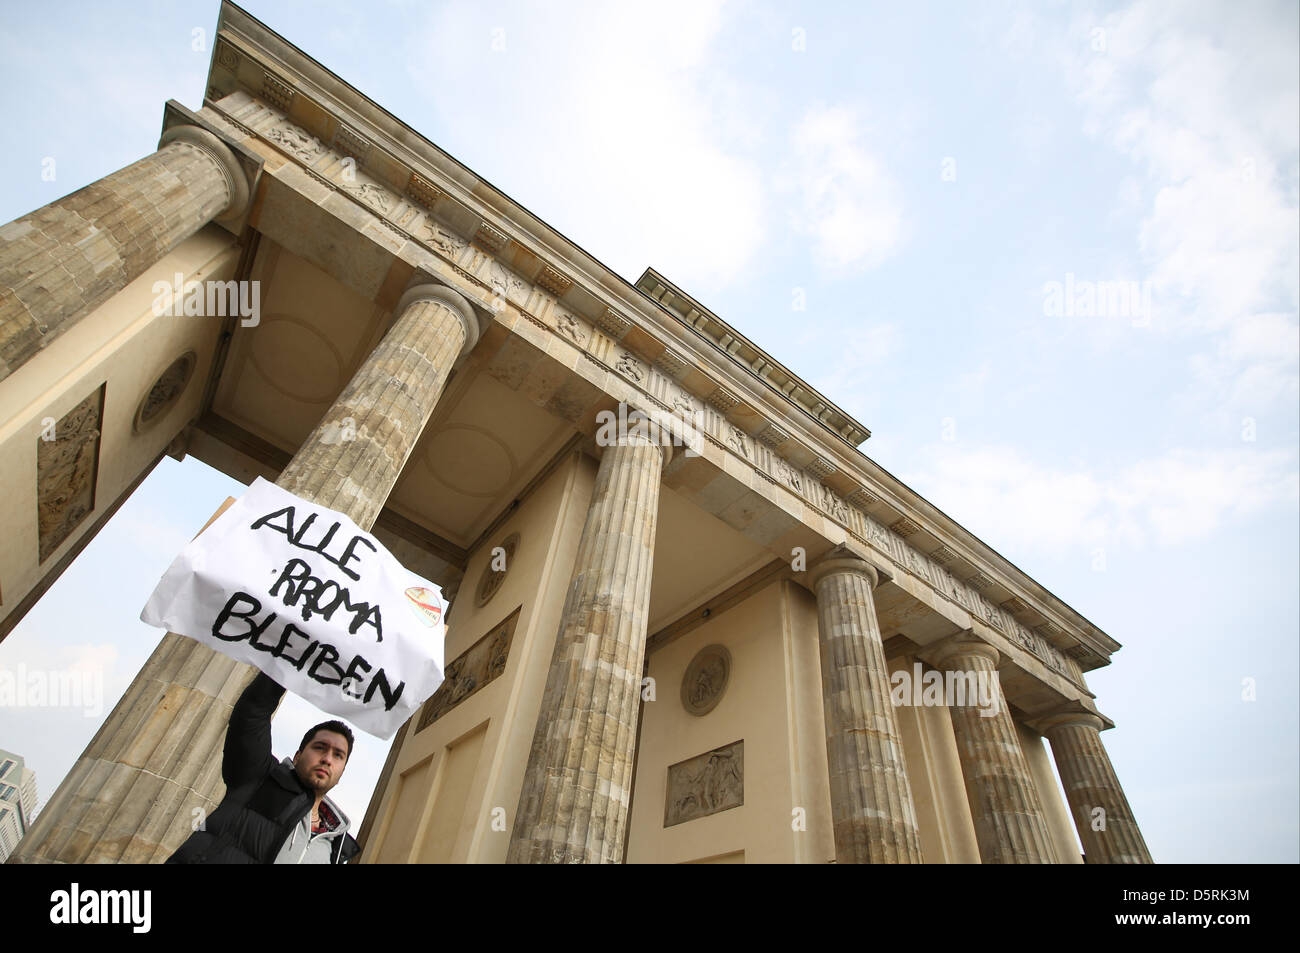 'All Roma will stay' is written on a placard held by a demonstrator at the Brandenburg Gate in Berlin,Germany, - Stock Image